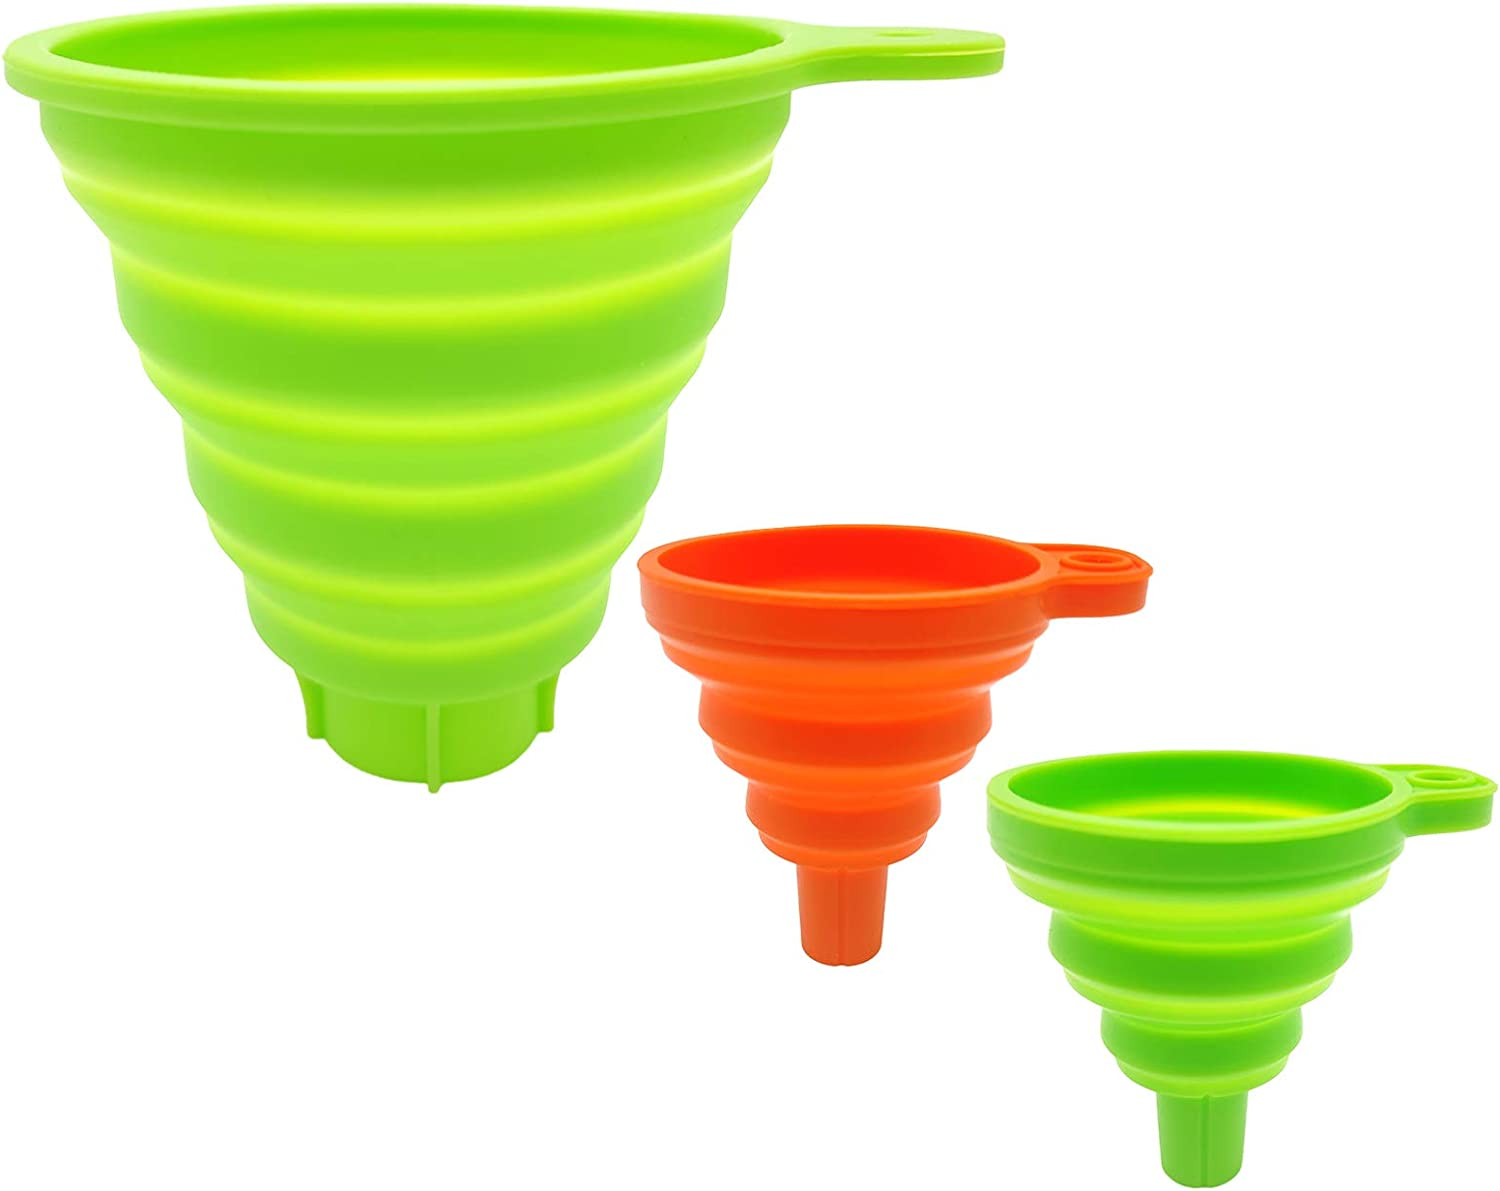 Kitchen Funnel Set of 3, Collapsible Funnels for Filling Bottles, Small Funnels for Liquid/Powder, Large Funnel for Canning,Jam and Spice Transfer,Food Grade Silicone Funnel for Cooking and Baking